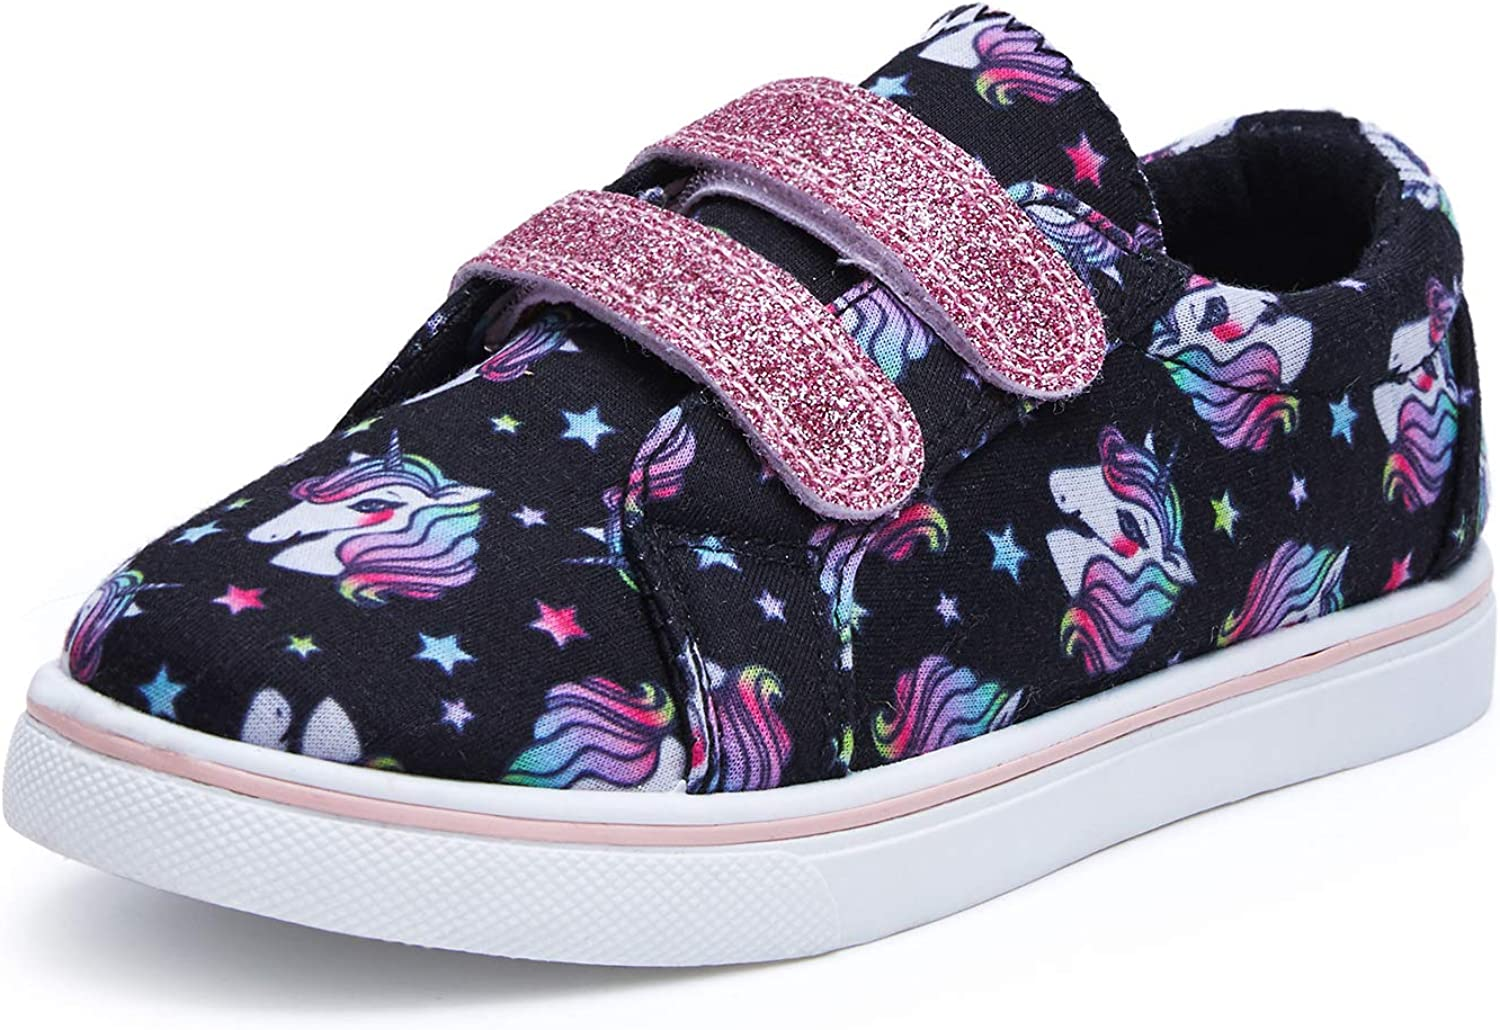 K KomForme Sneakers Max 43% OFF for Boys and Kids Girls Walking High material Toddler Soft